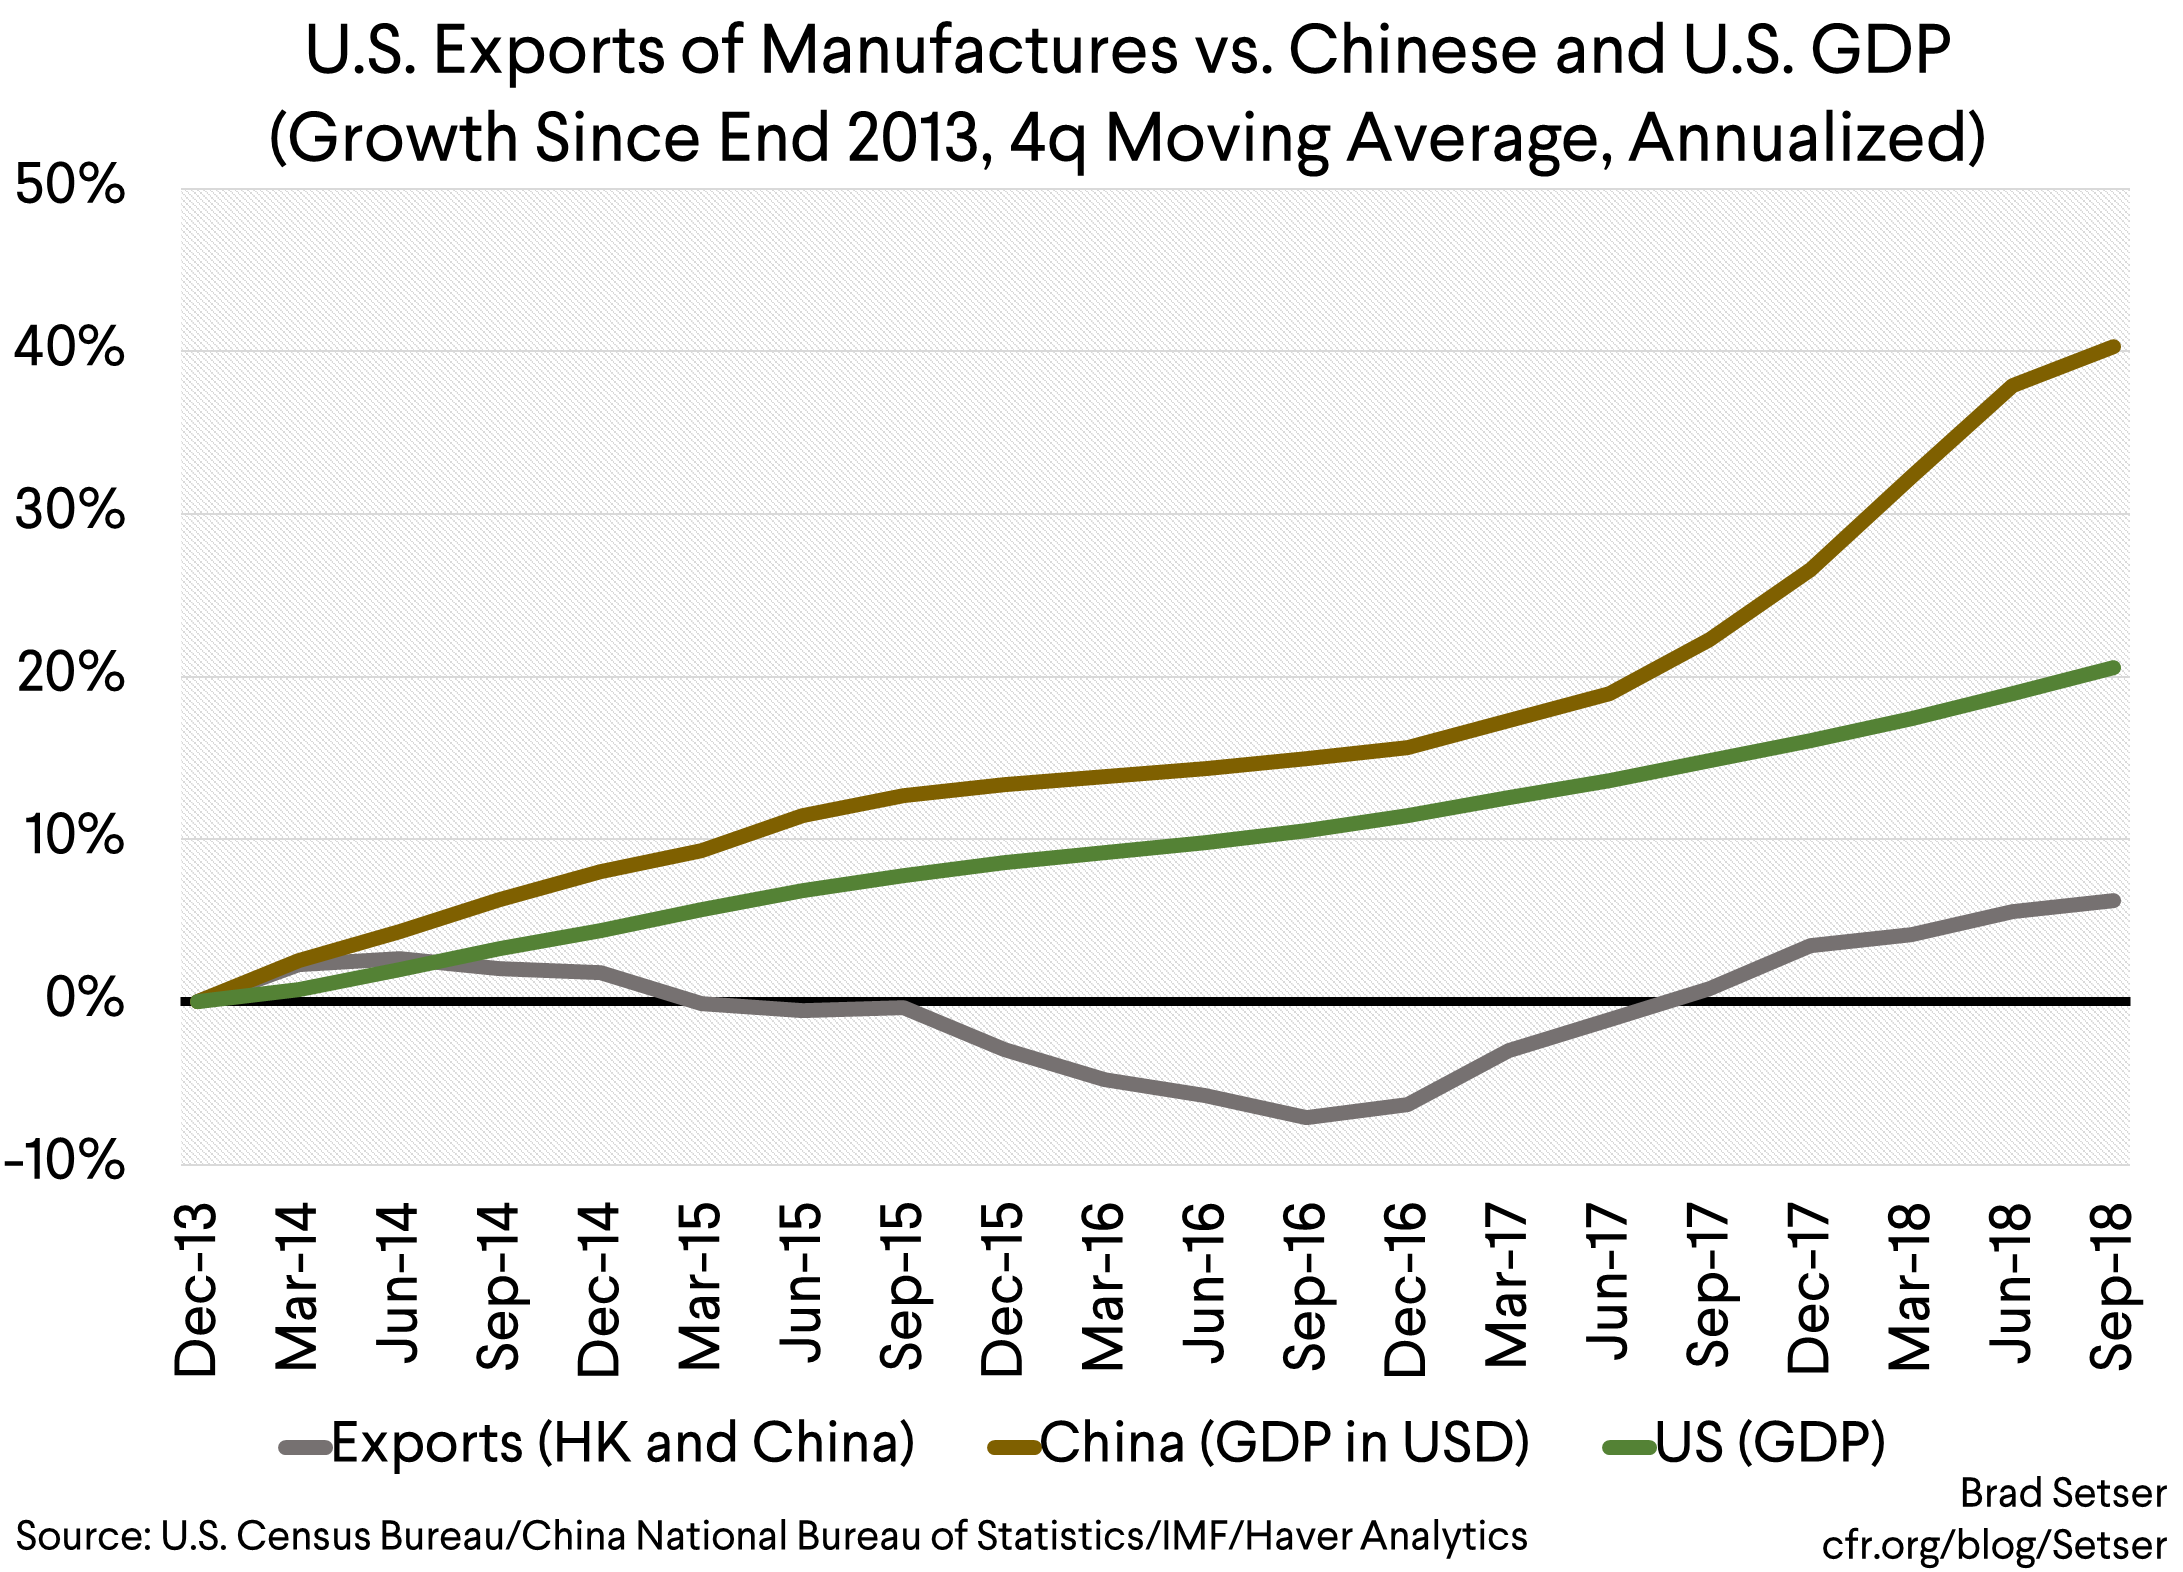 Why Haven't U.S. Exports of Manufactures Kept Pace with China's Growth?